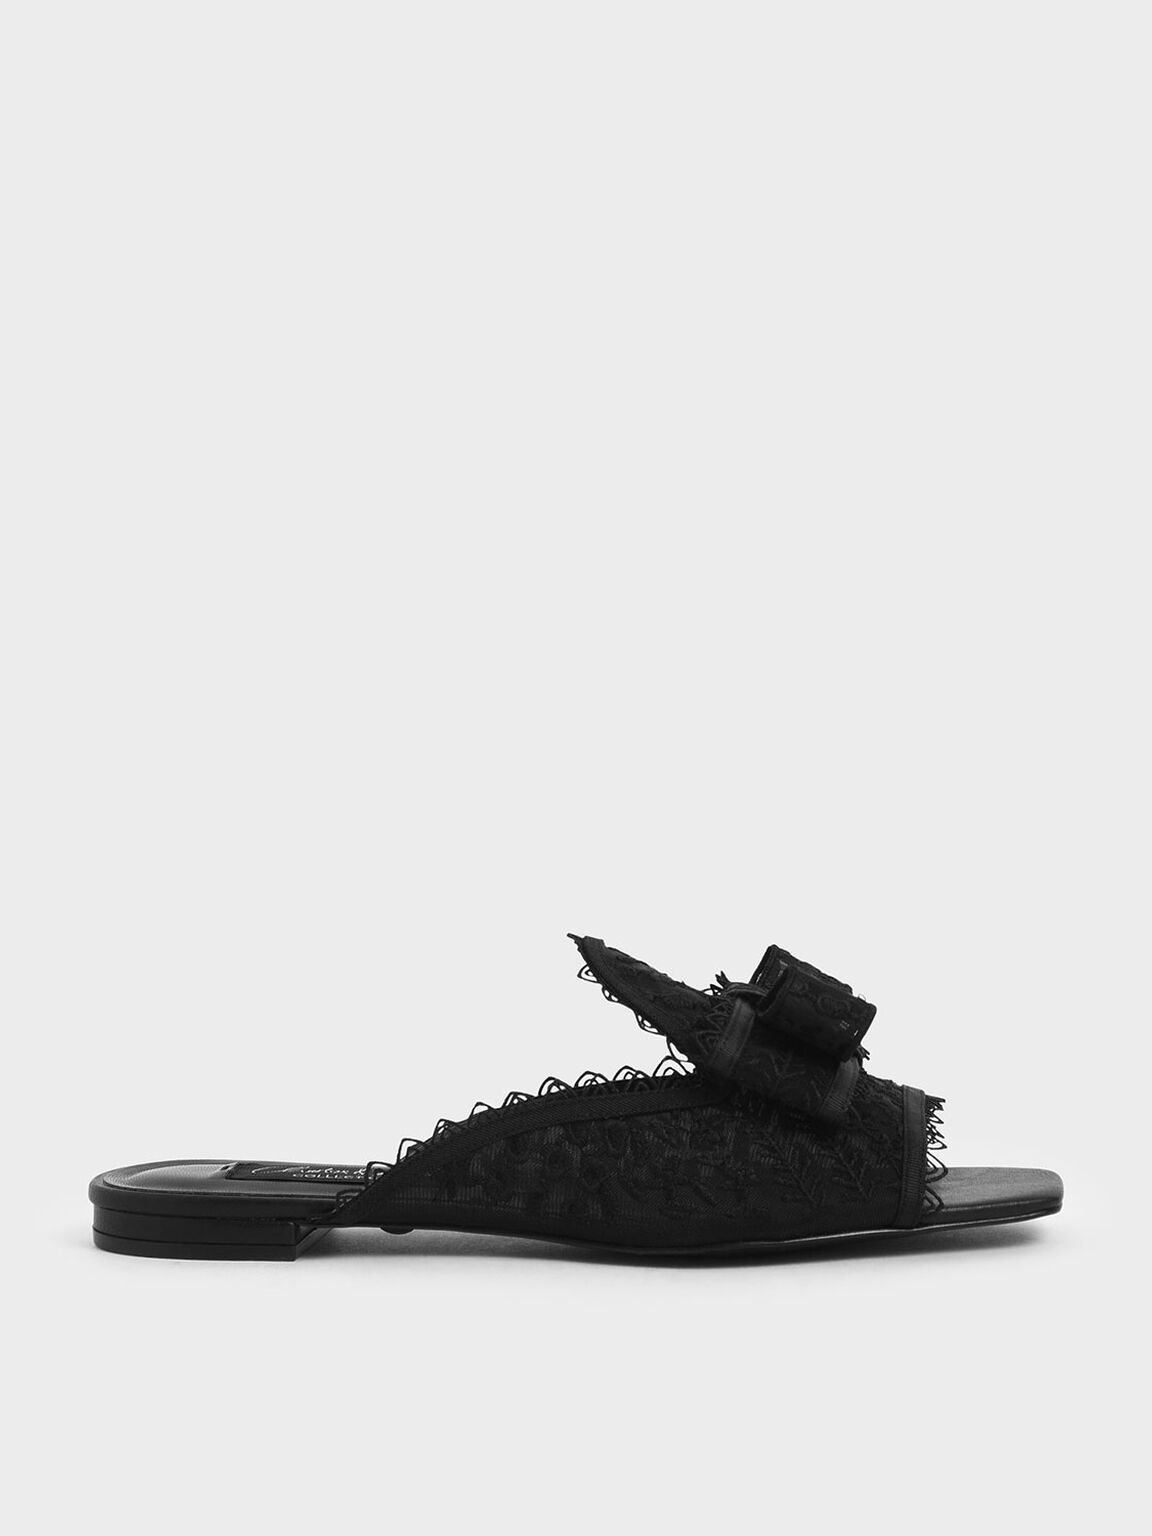 Floral Embroidered Mesh Slide Sandals, Black, hi-res